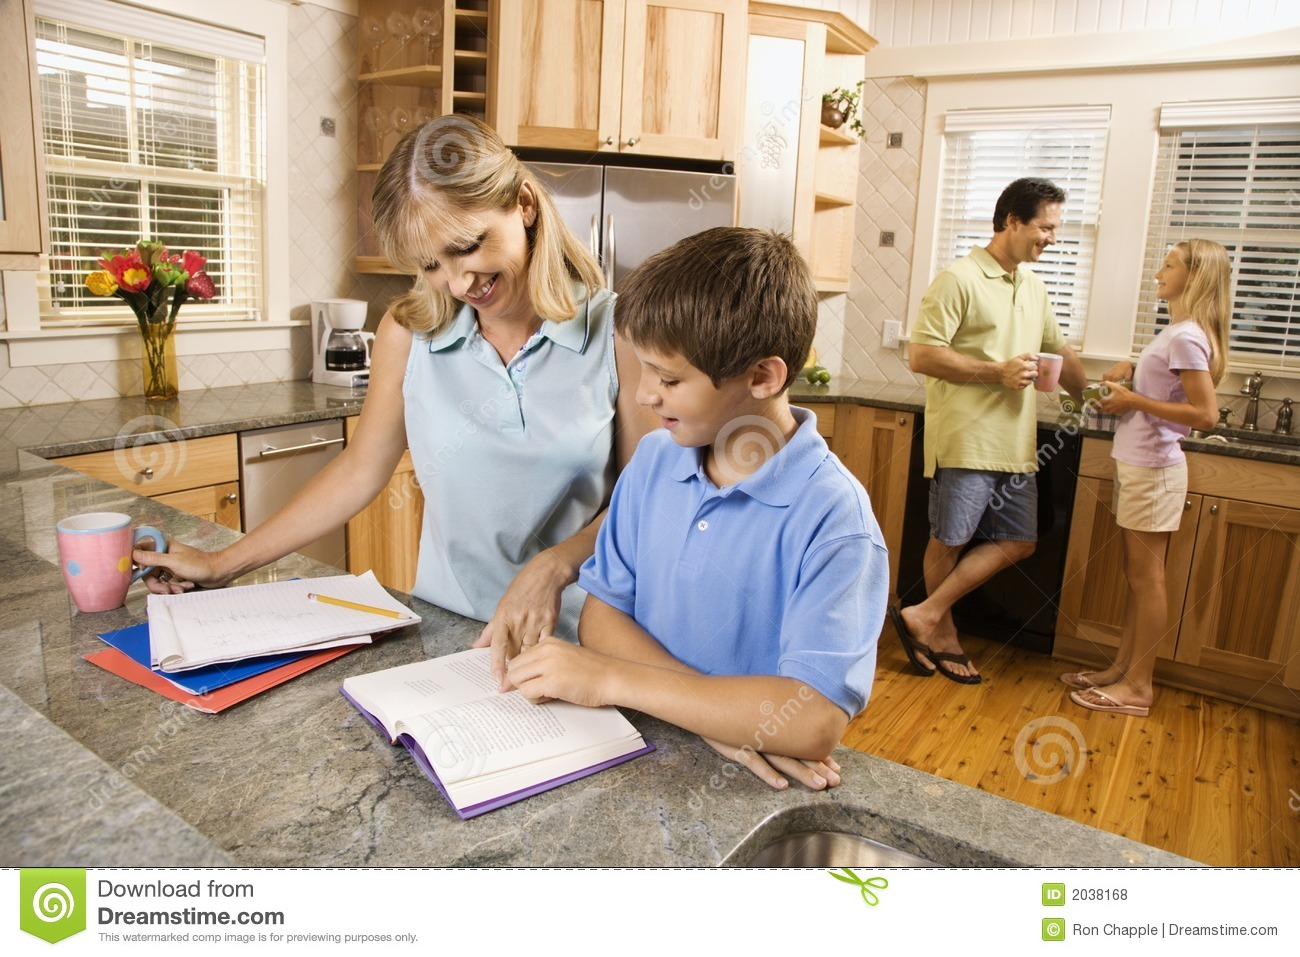 Studenten Küche Ikea Family In Kitchen Doing Homework Stock Photo Image Of